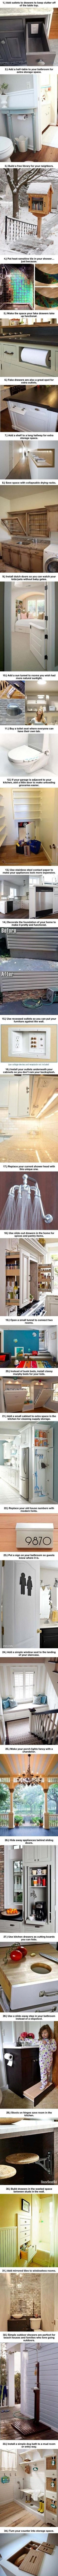 34 Insanely Clever Upgrades To Make Your Home Awesome! by Nancy ^_^